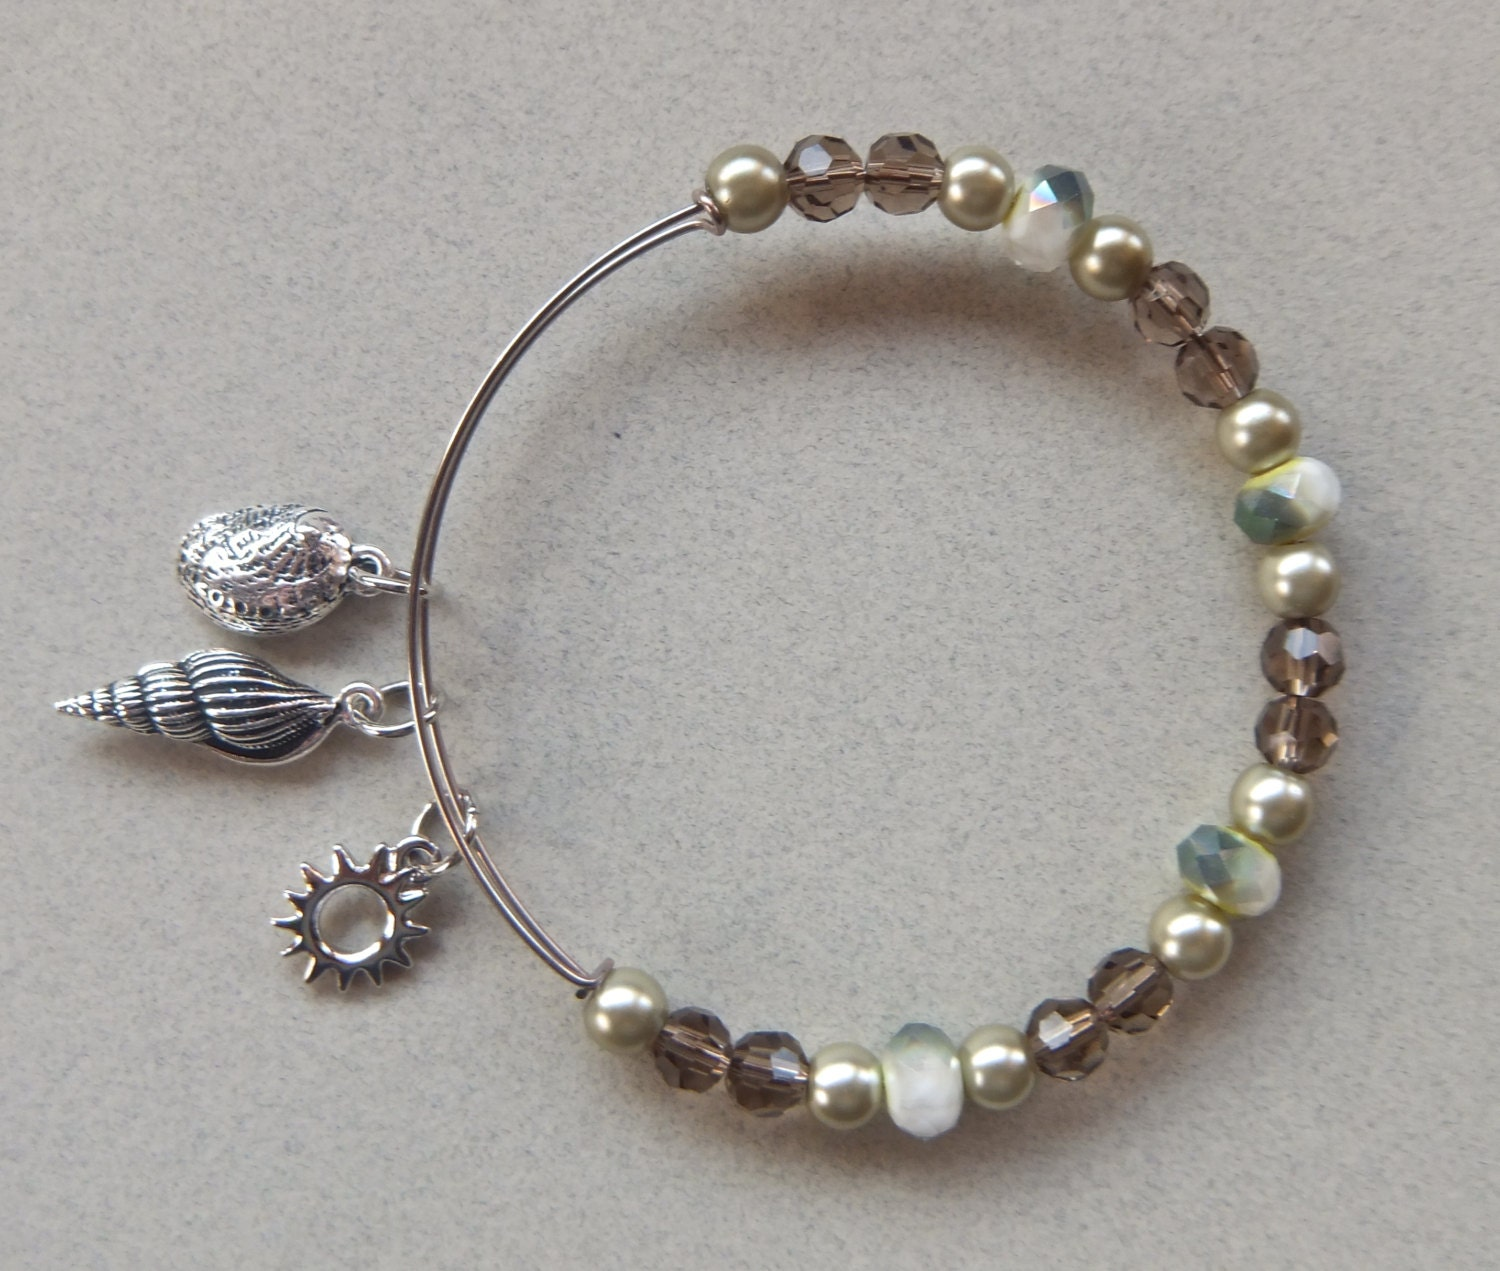 expandable alex and ani inspired bracelet by nonisfancies